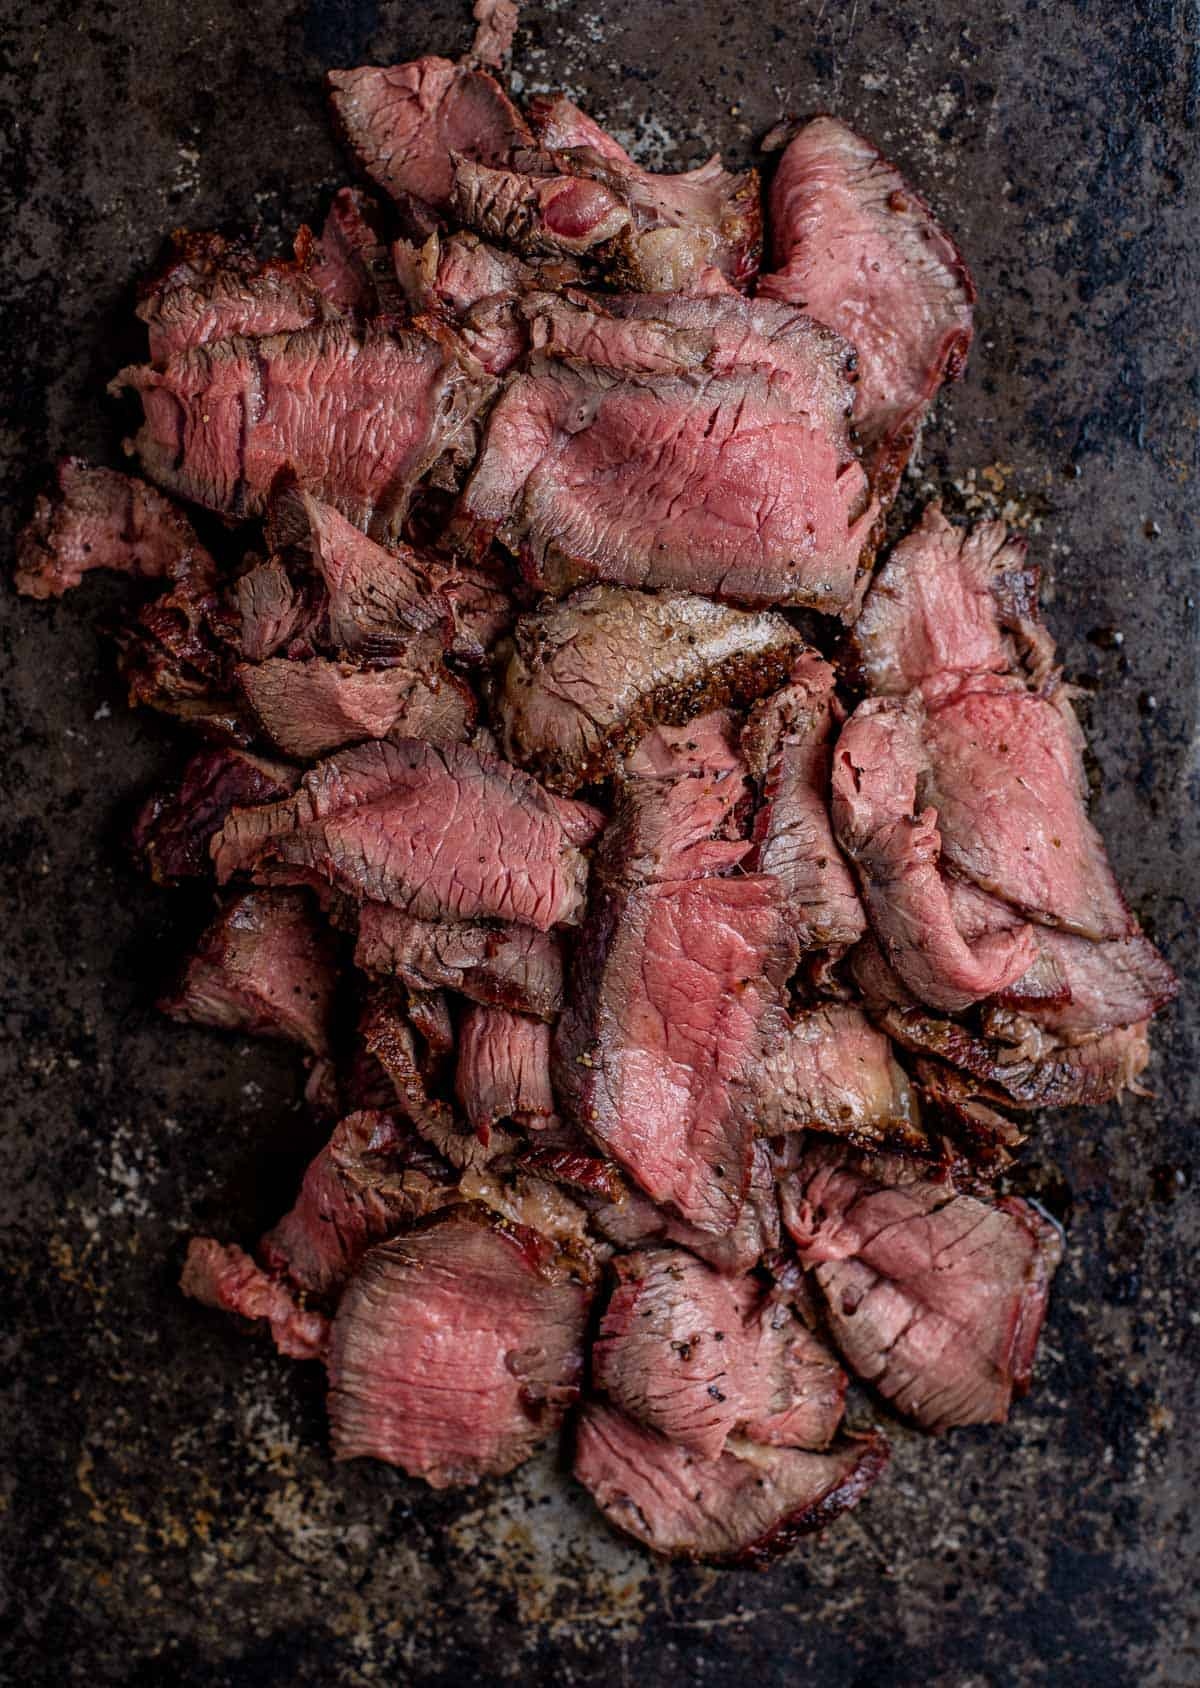 Thin slices of grilled steak for cheesesteak sandwiches